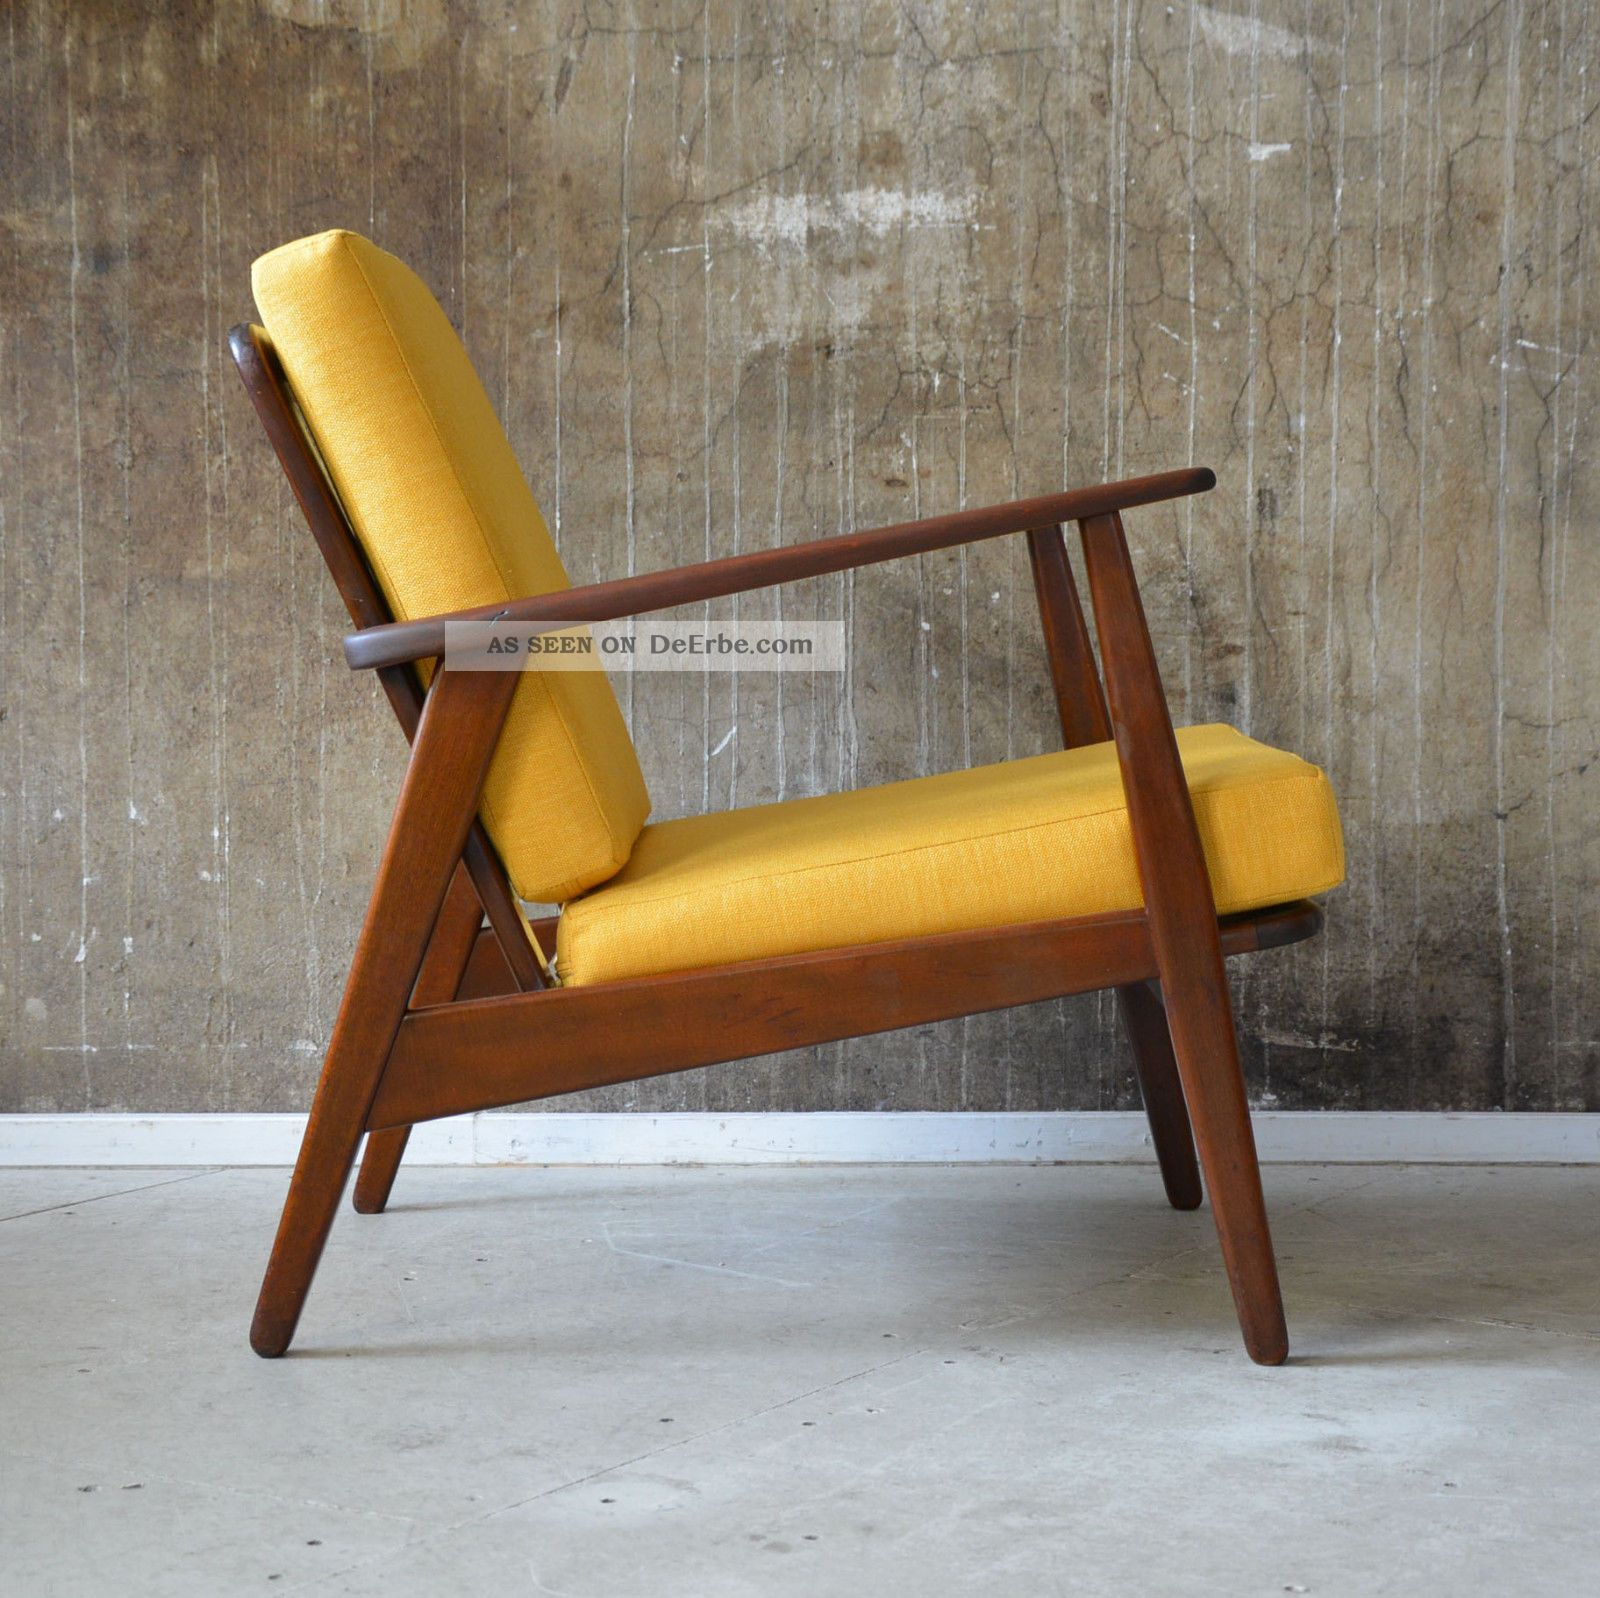 Möbel Sessel 60er Teak Sessel Danish Design 60s Easy Chair Vintage Midcentury